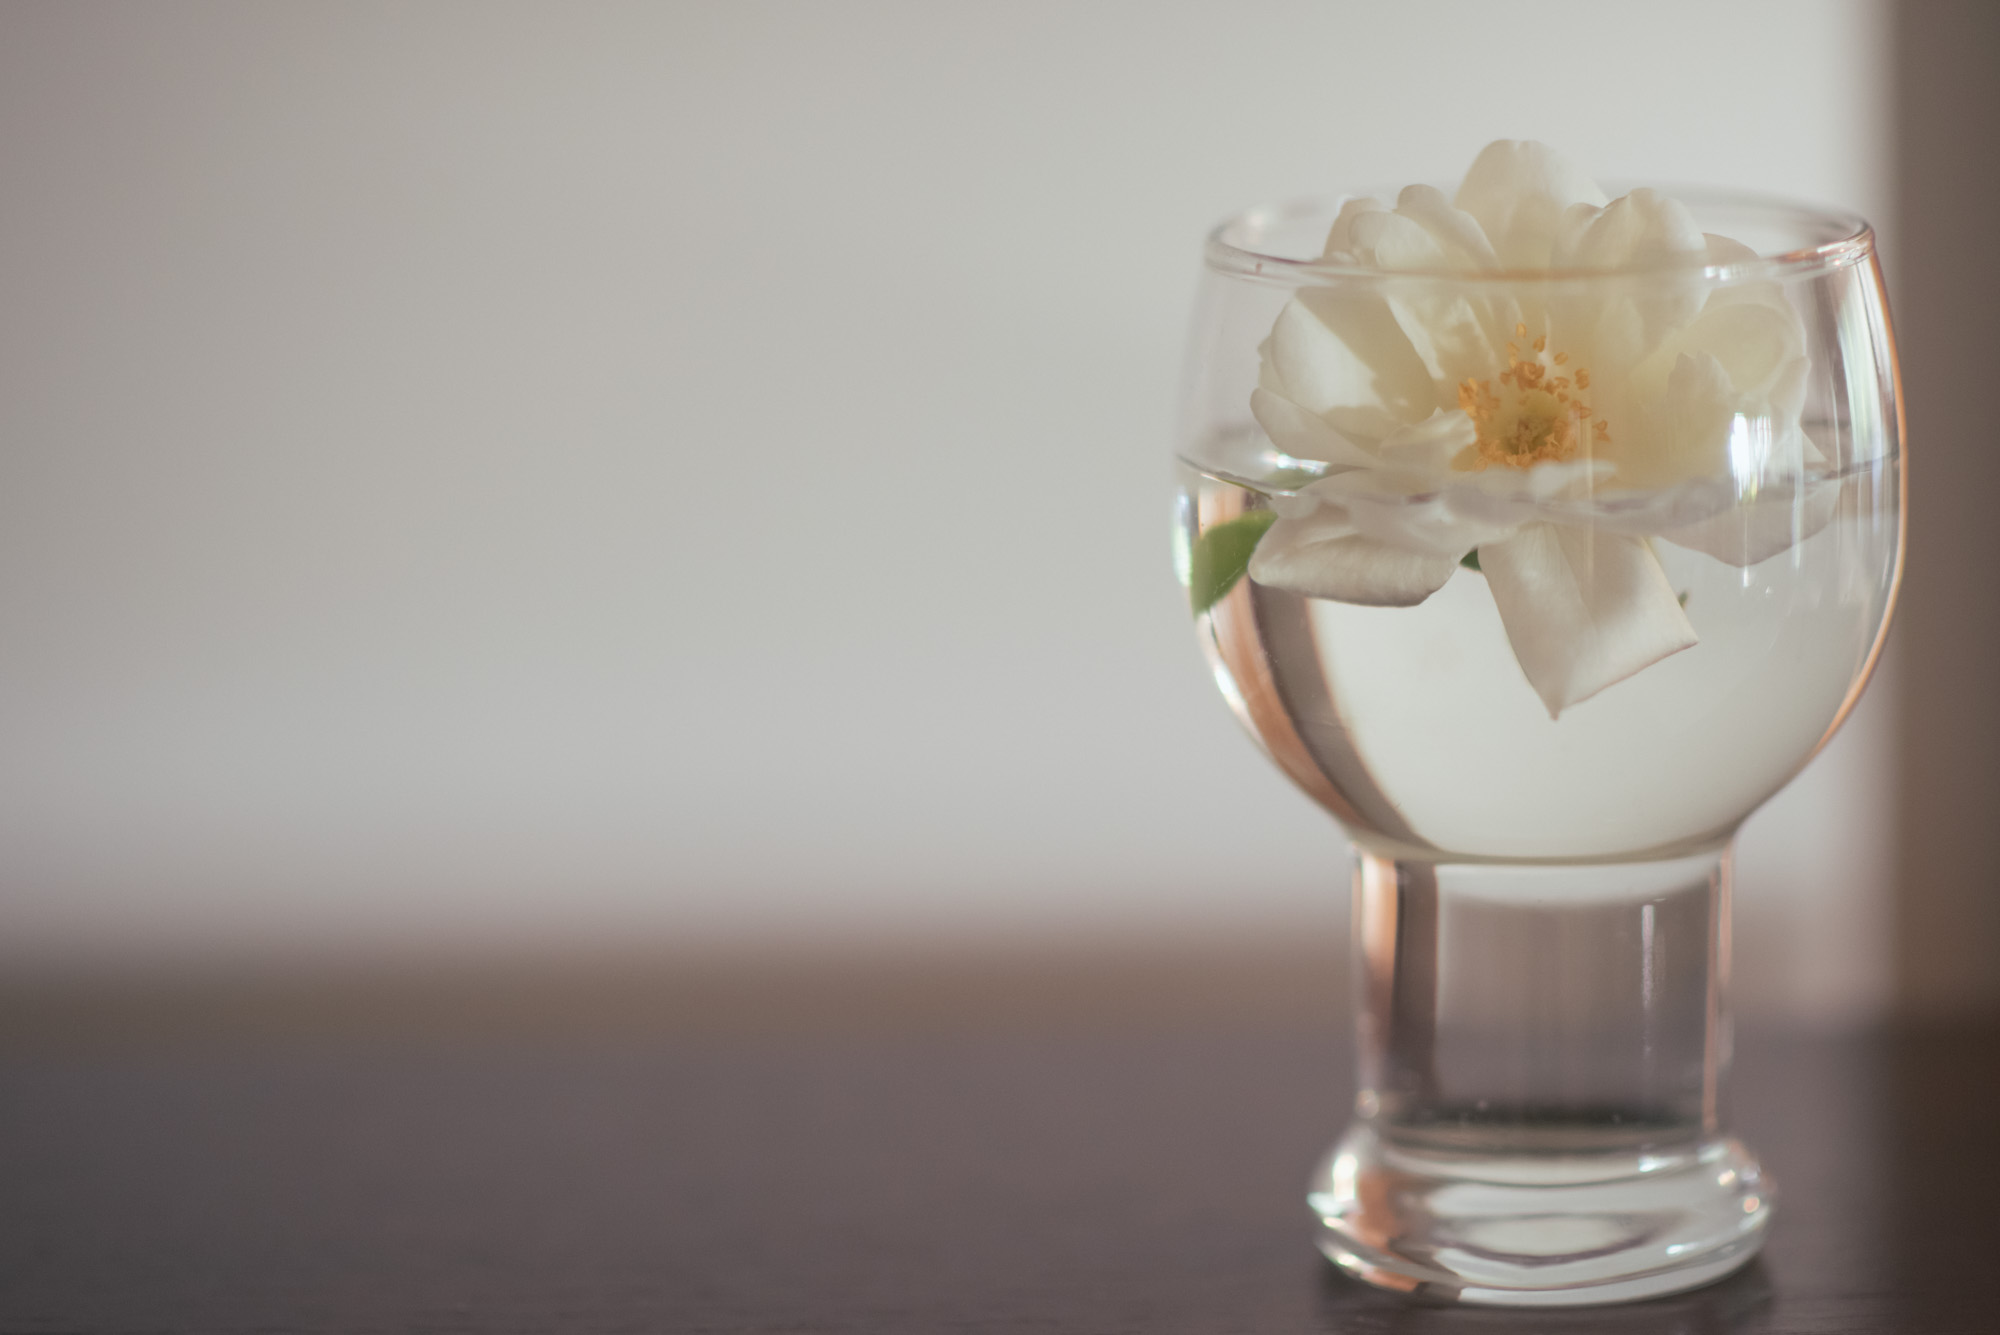 A flower in a glass for a traditional Sri Lankan wedding blessing.